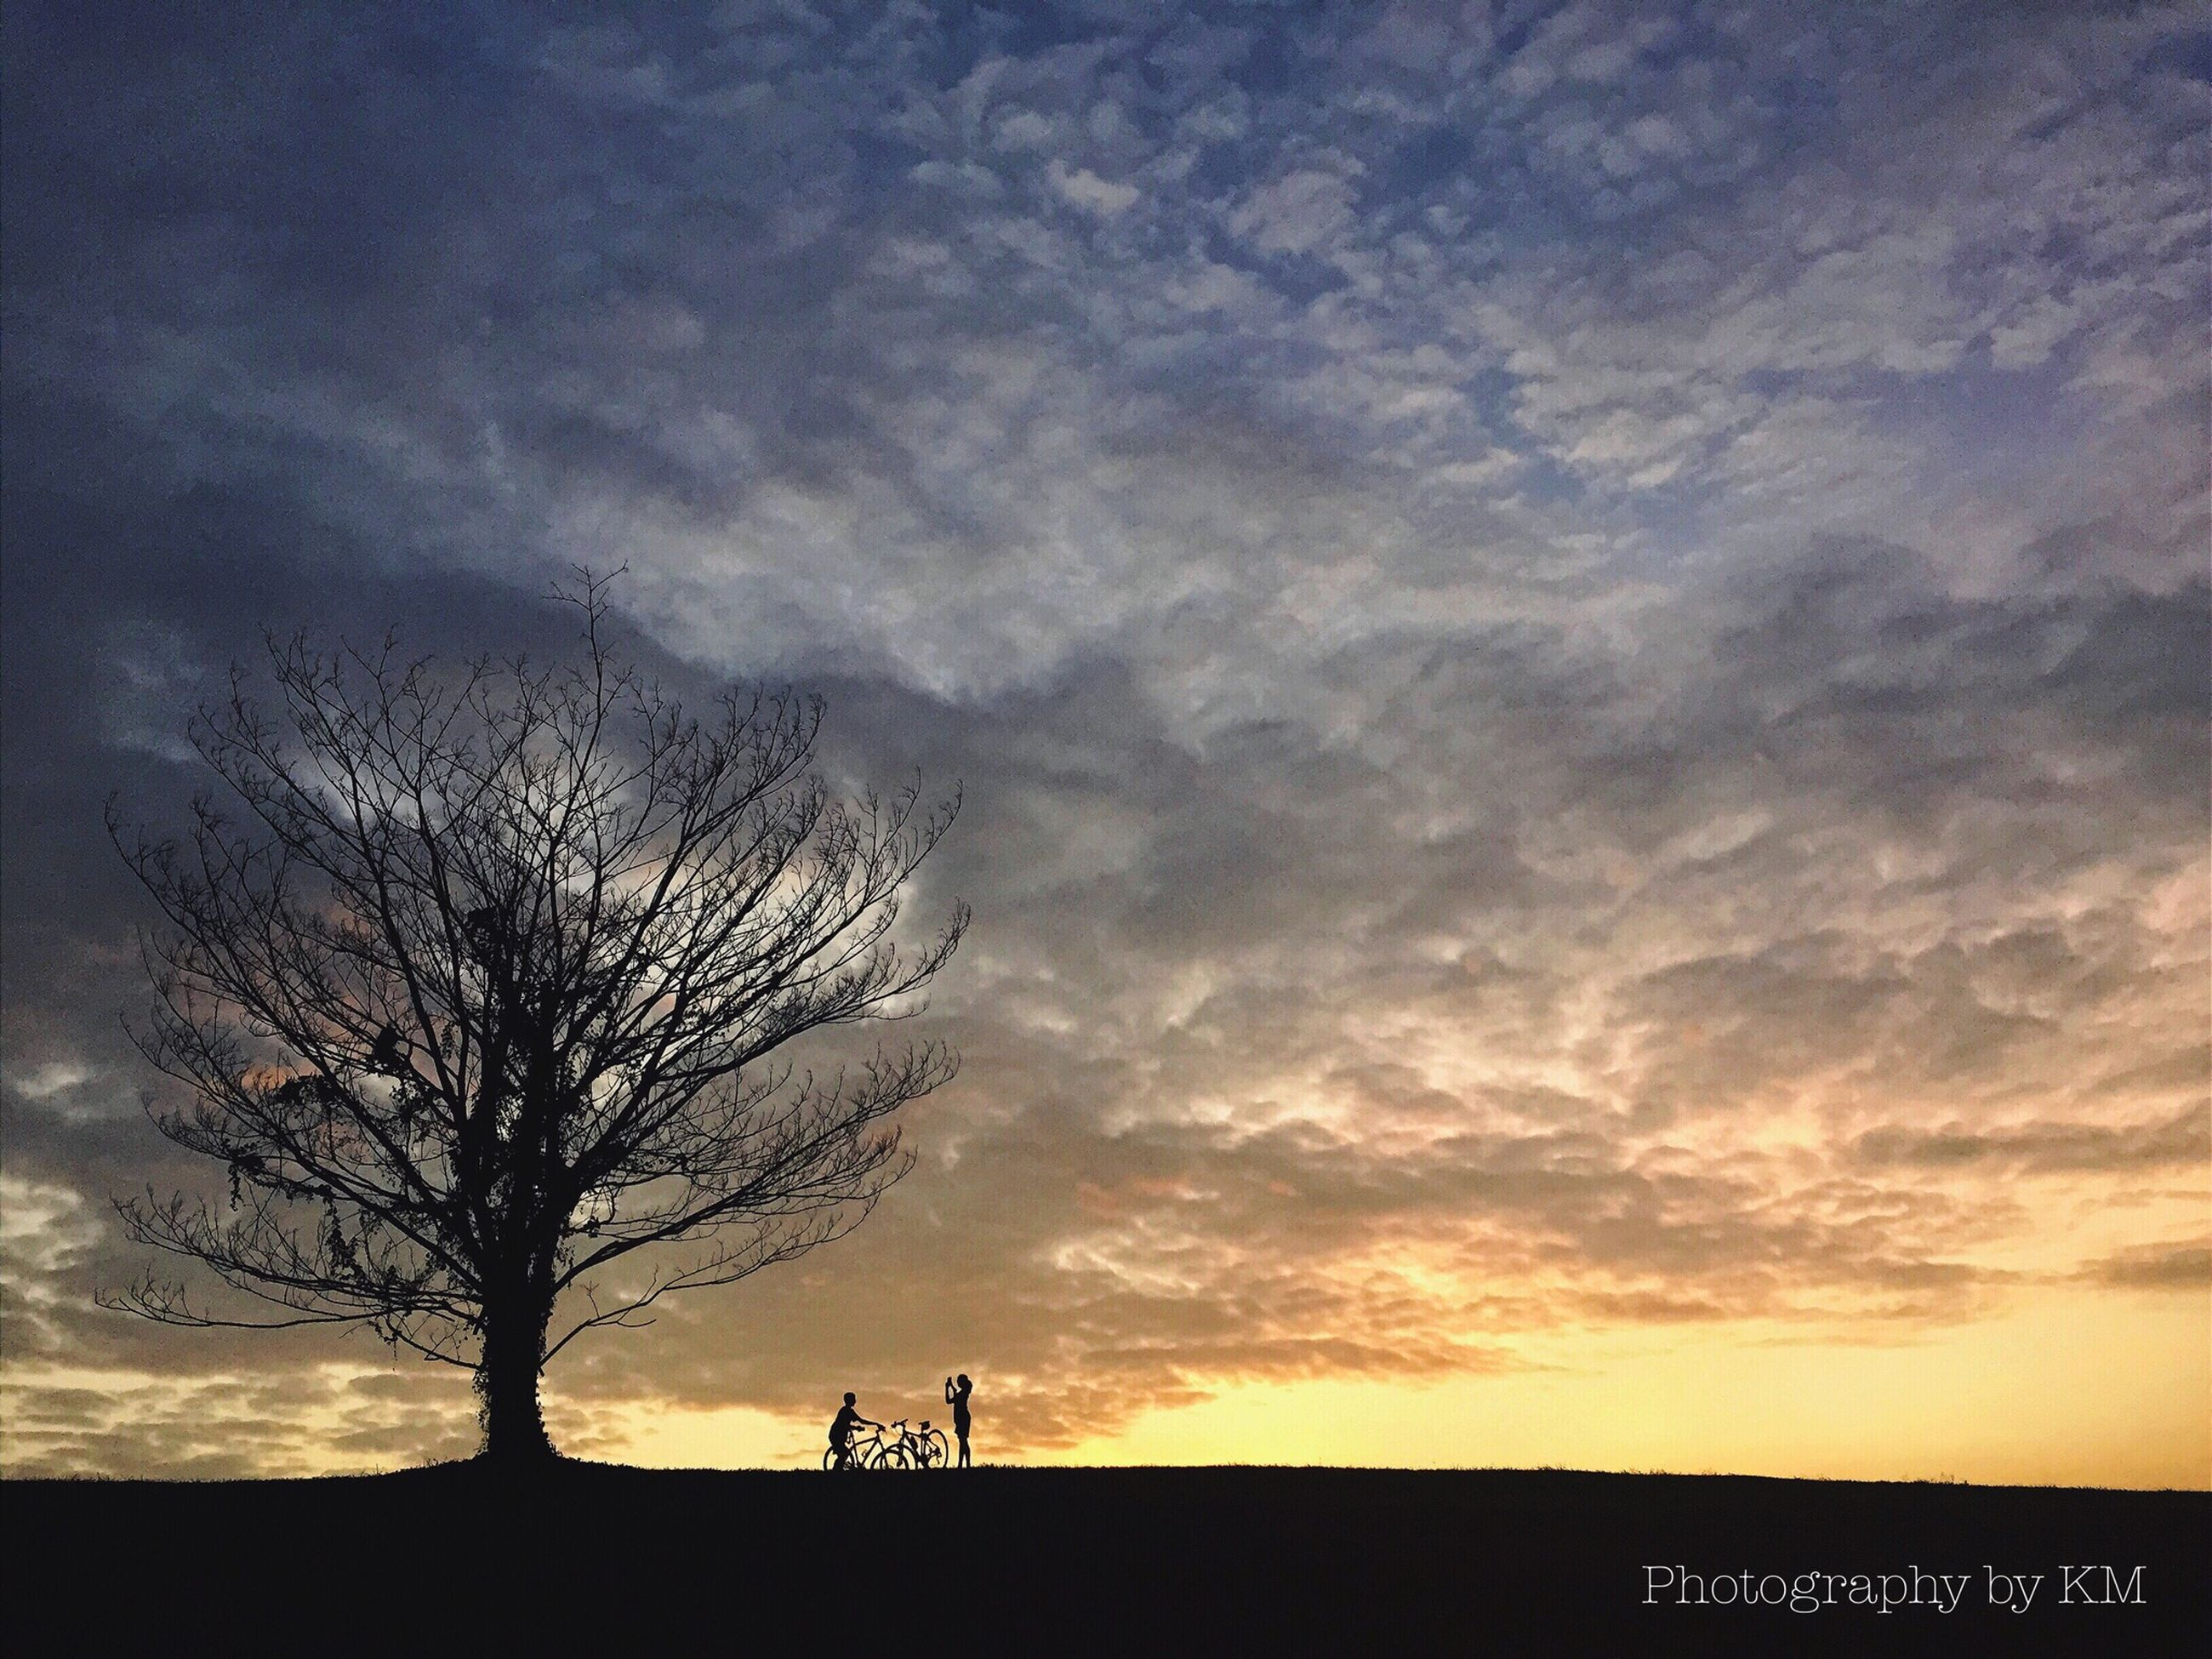 silhouette, sky, sunset, bare tree, cloud - sky, tranquility, tranquil scene, tree, beauty in nature, scenics, landscape, nature, cloud, cloudy, field, dusk, branch, idyllic, outline, outdoors